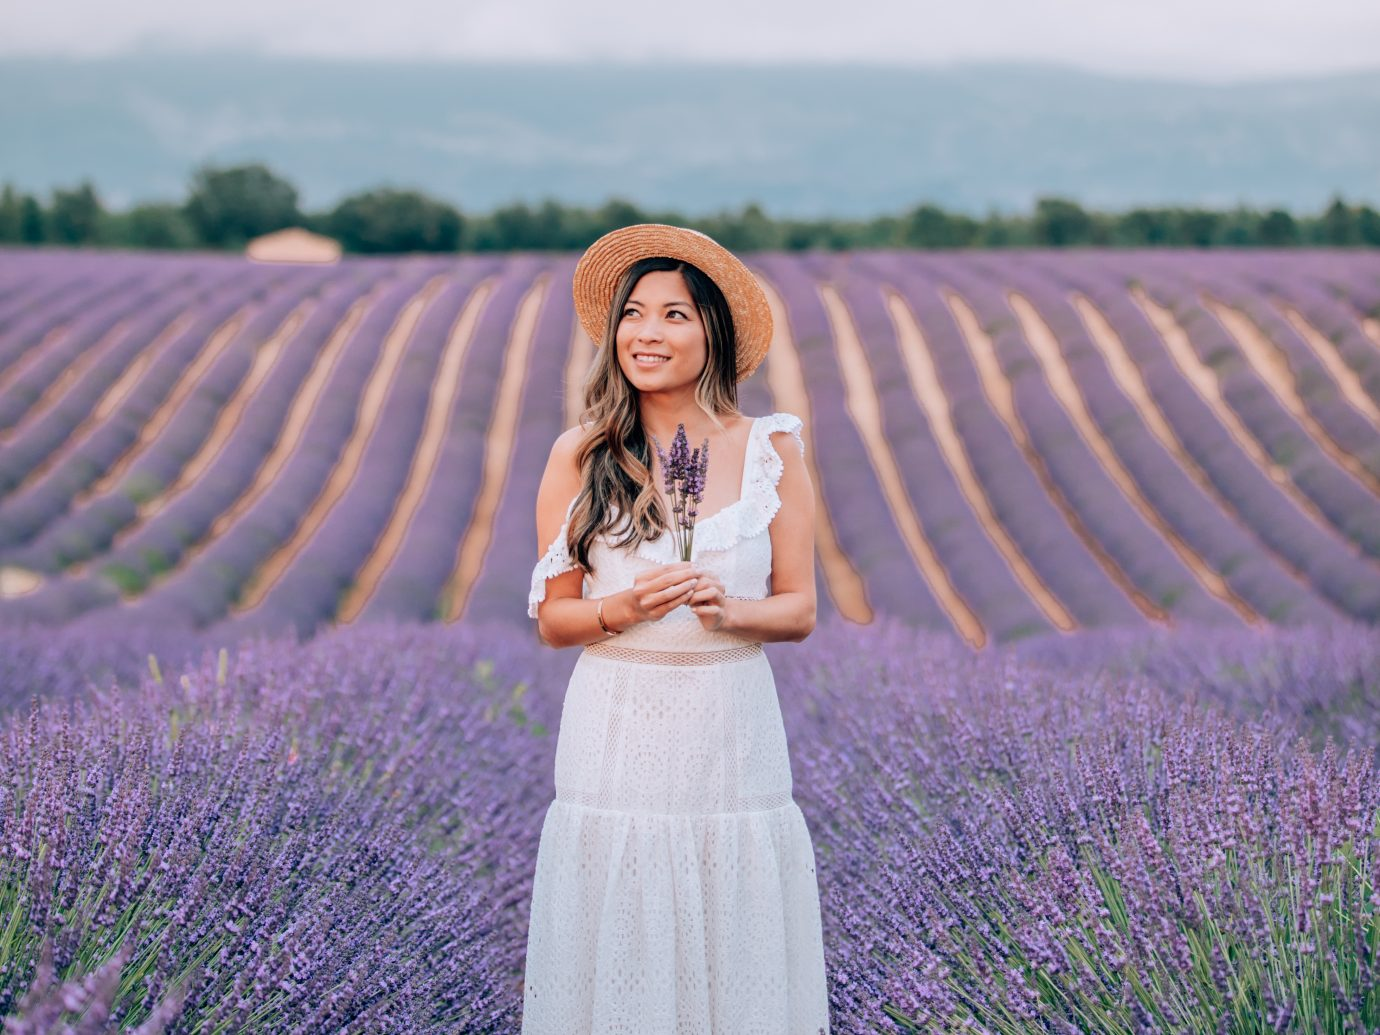 Girl in front of a field of lavender